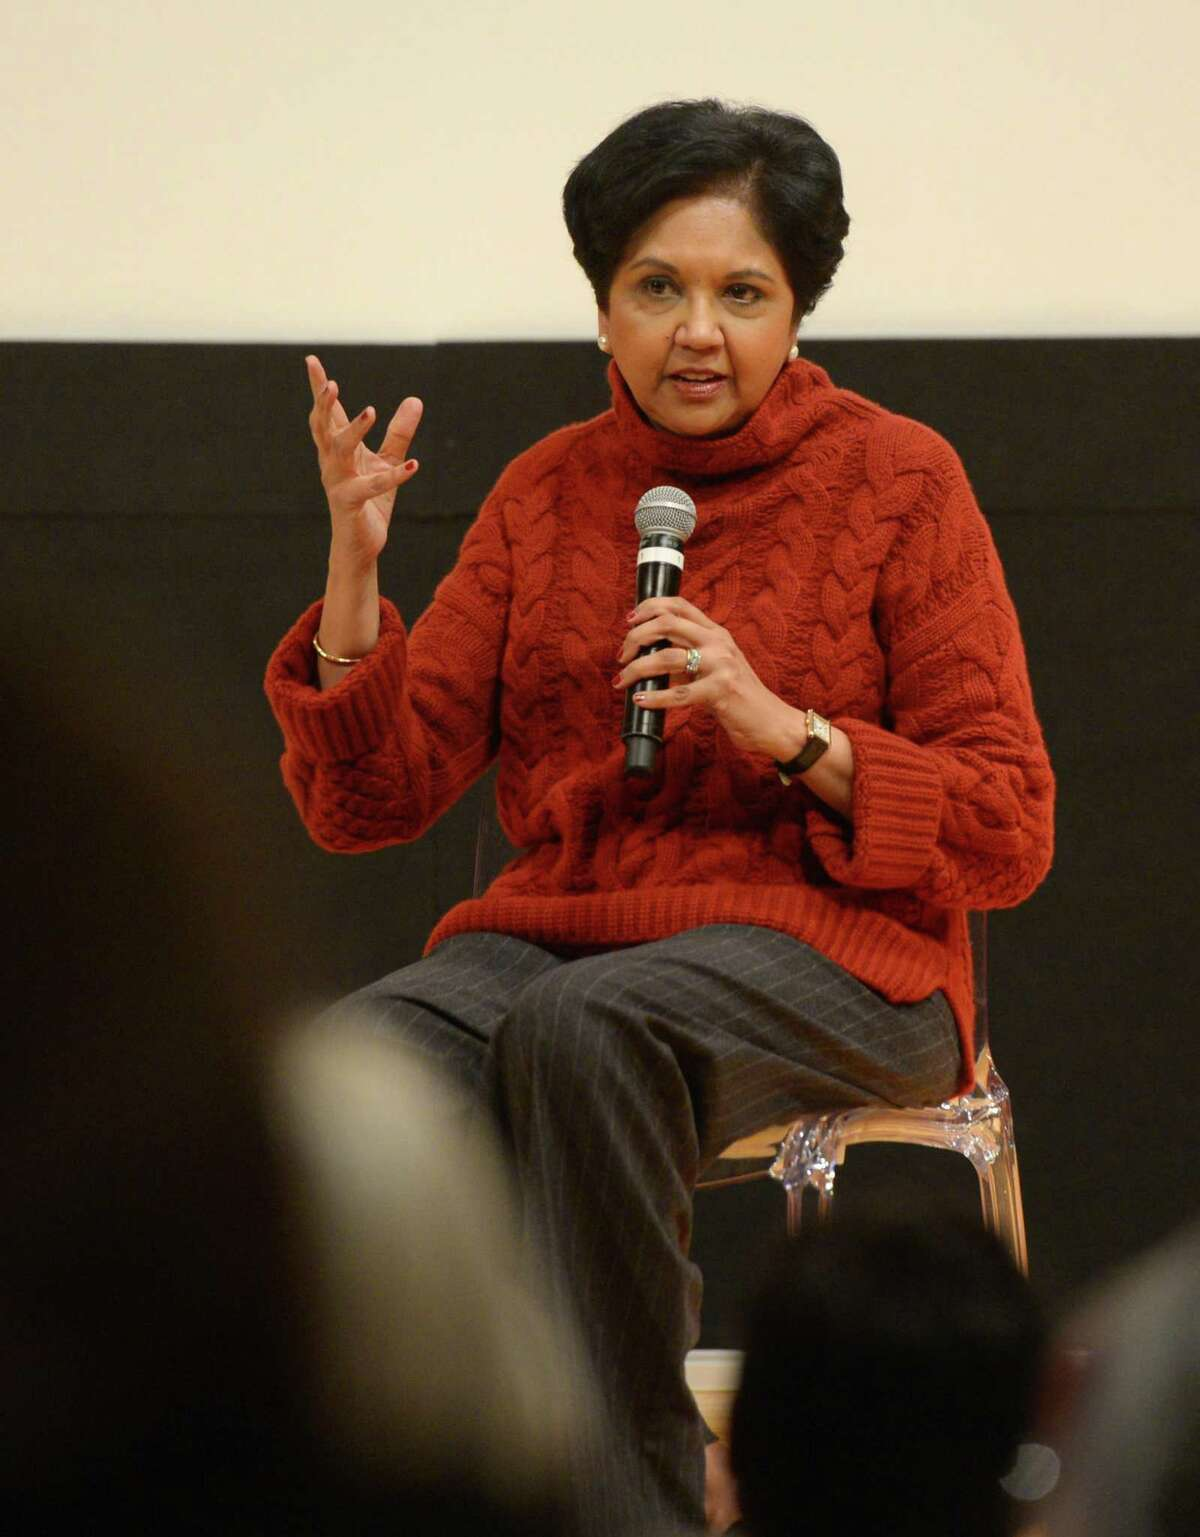 PepsiCo Chairman Indra Nooyi speaks during the Community Conversation featuring State Sen. Alex Bergstein and PepsiCo Chairman Indra Nooyi at Greenwich Library's Cole Auditorium in Greenwich, Conn. Thursday, Jan. 24, 2019. The two discussed how to attract and retain businesses in Connecticut as a small group protested the proposal of tolls outside the event.